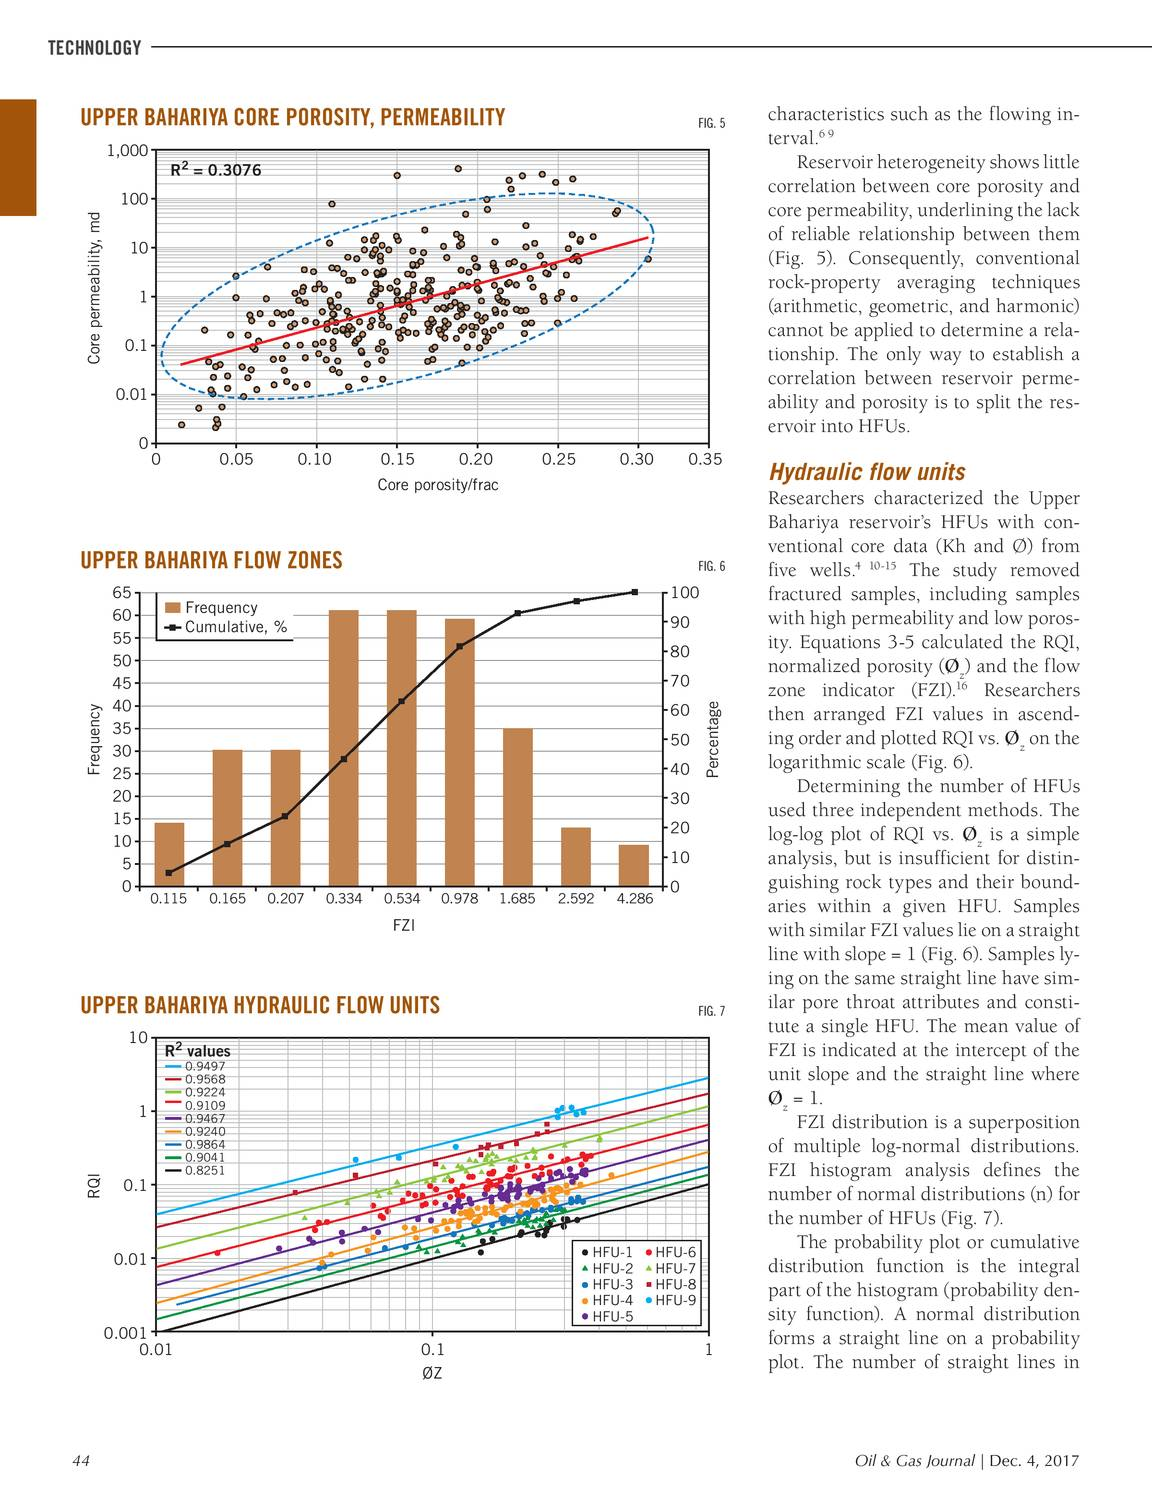 Oil & Gas Journal - December 4, 2017 - page 43